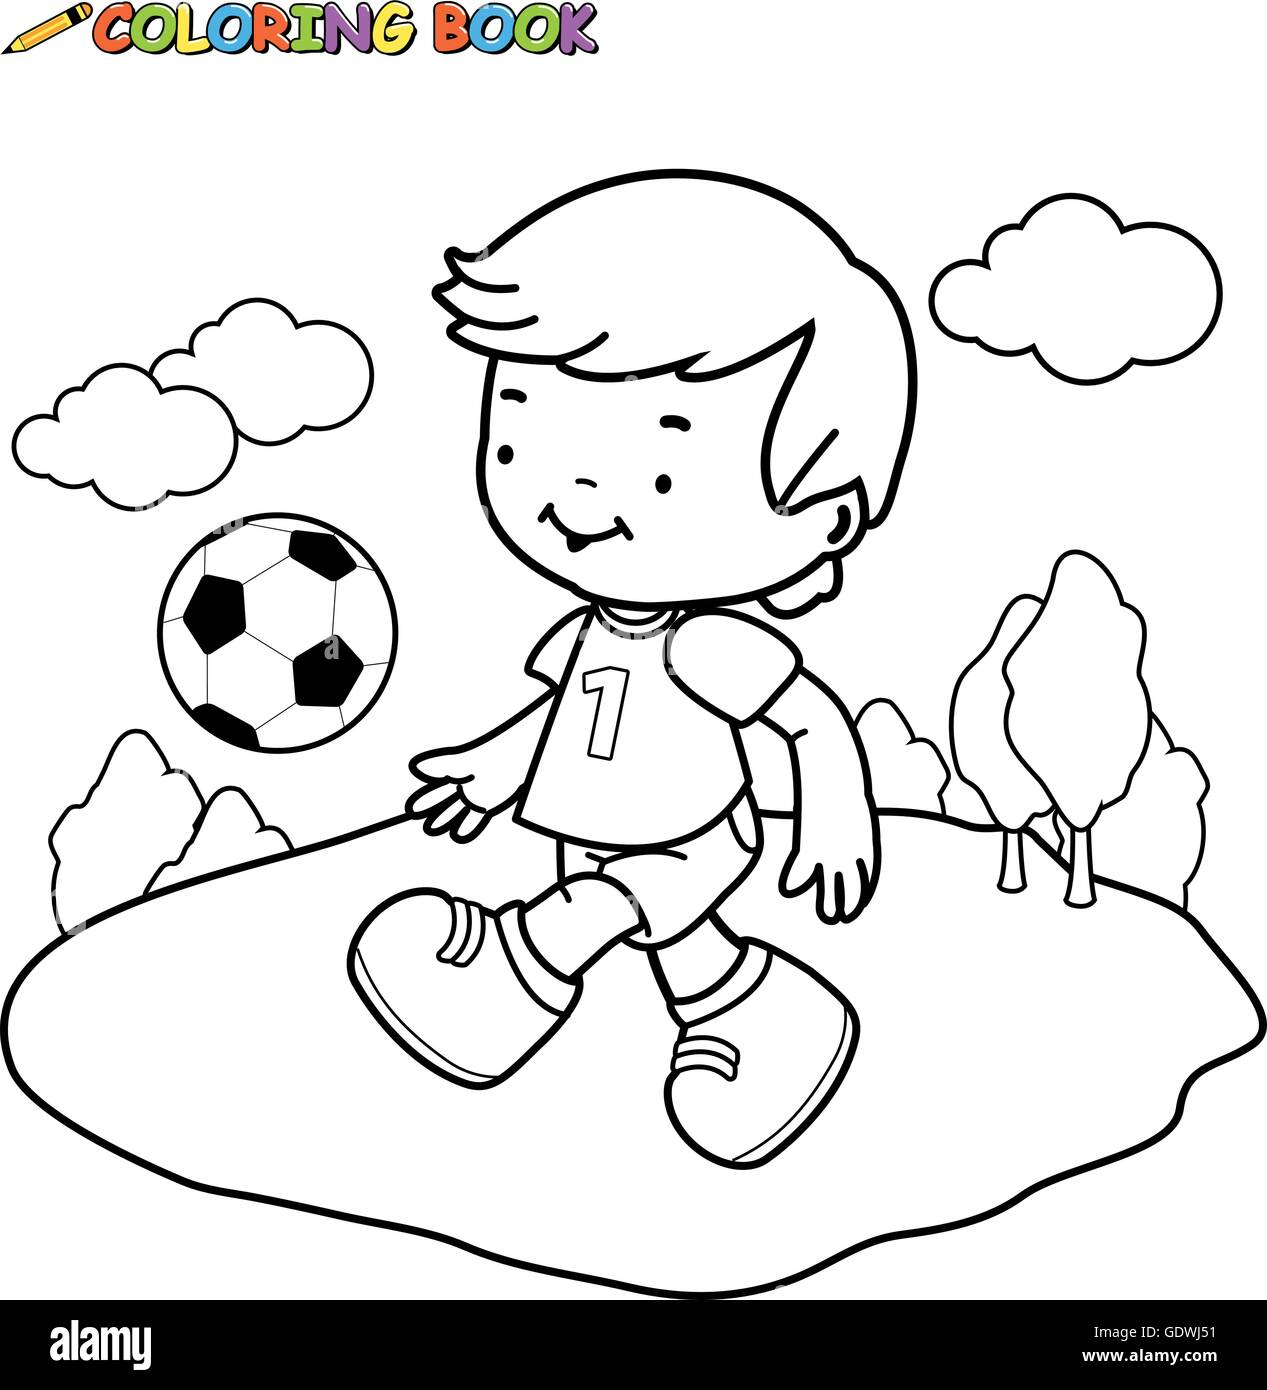 Black and white outline image of a boy playing soccer. Coloring book ...